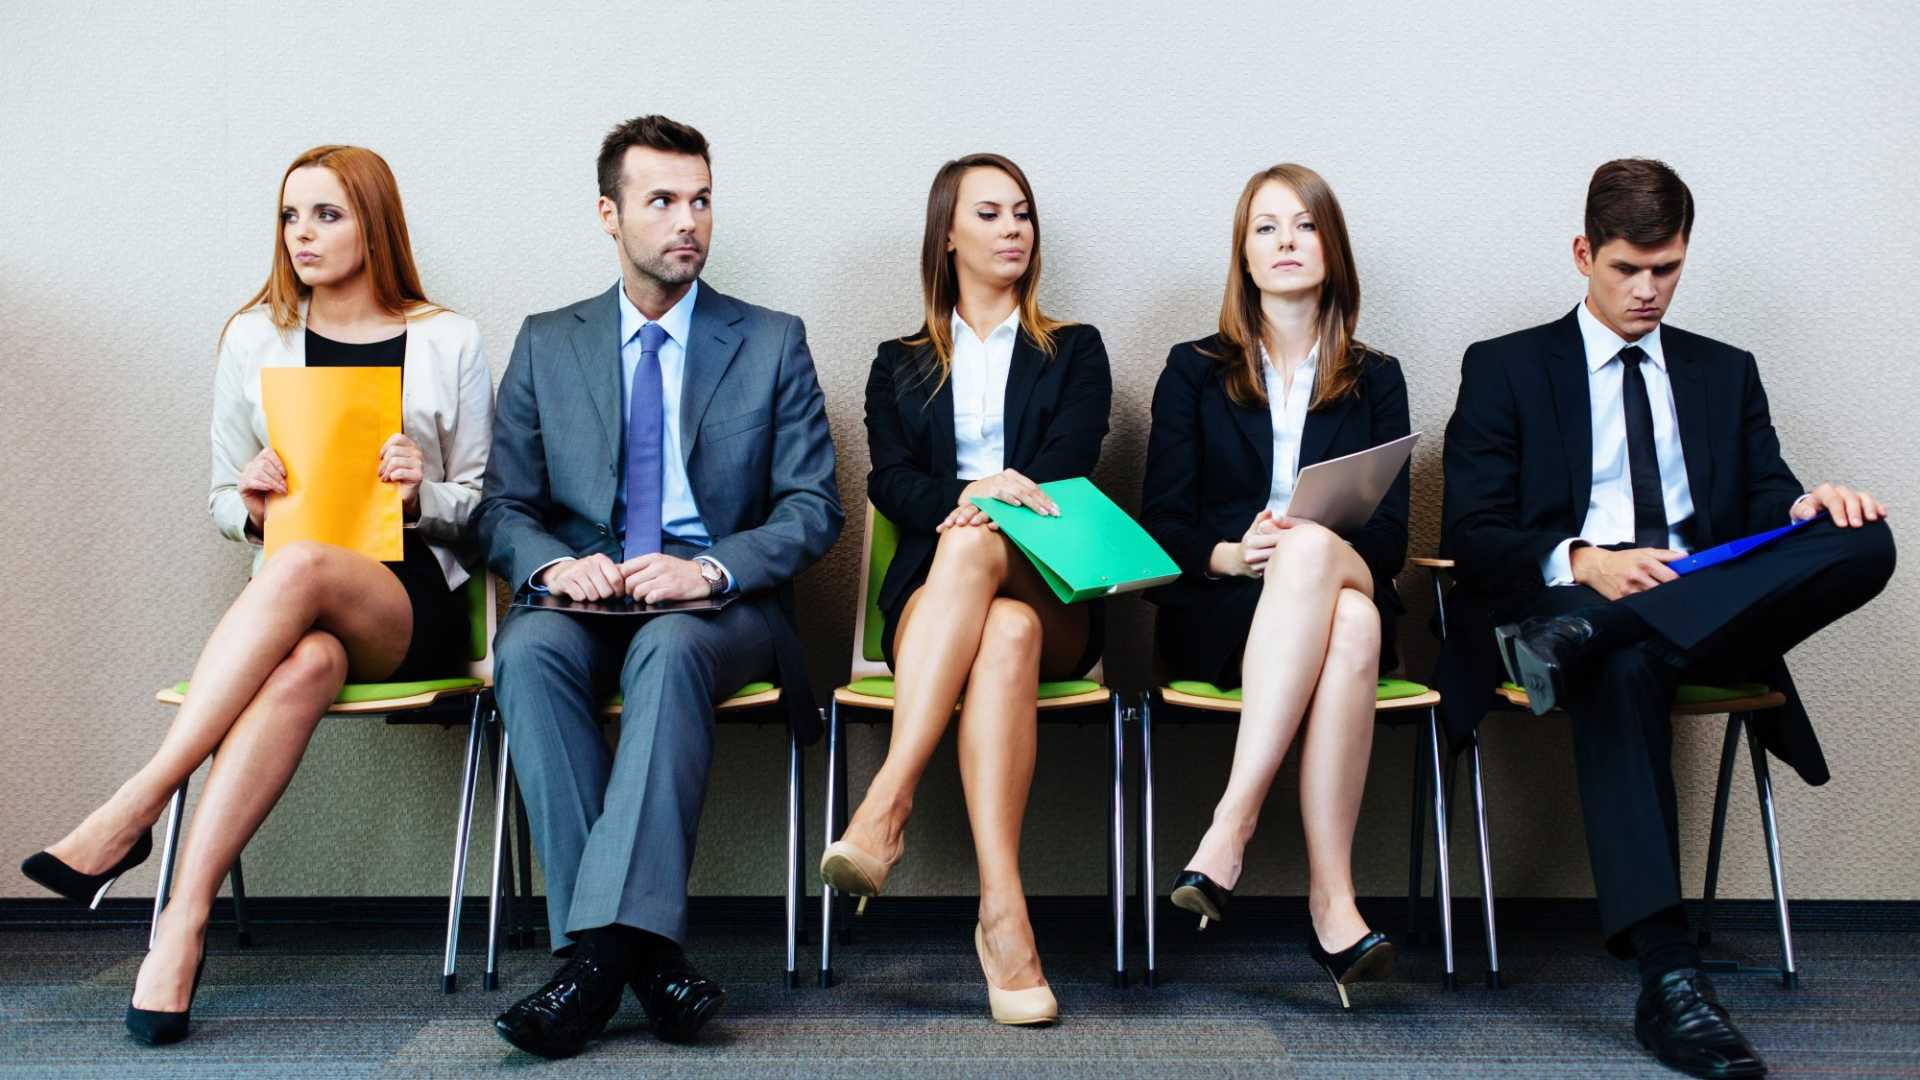 These 5 Job Interview Mistakes Make Millennials Look Really Unprofessional